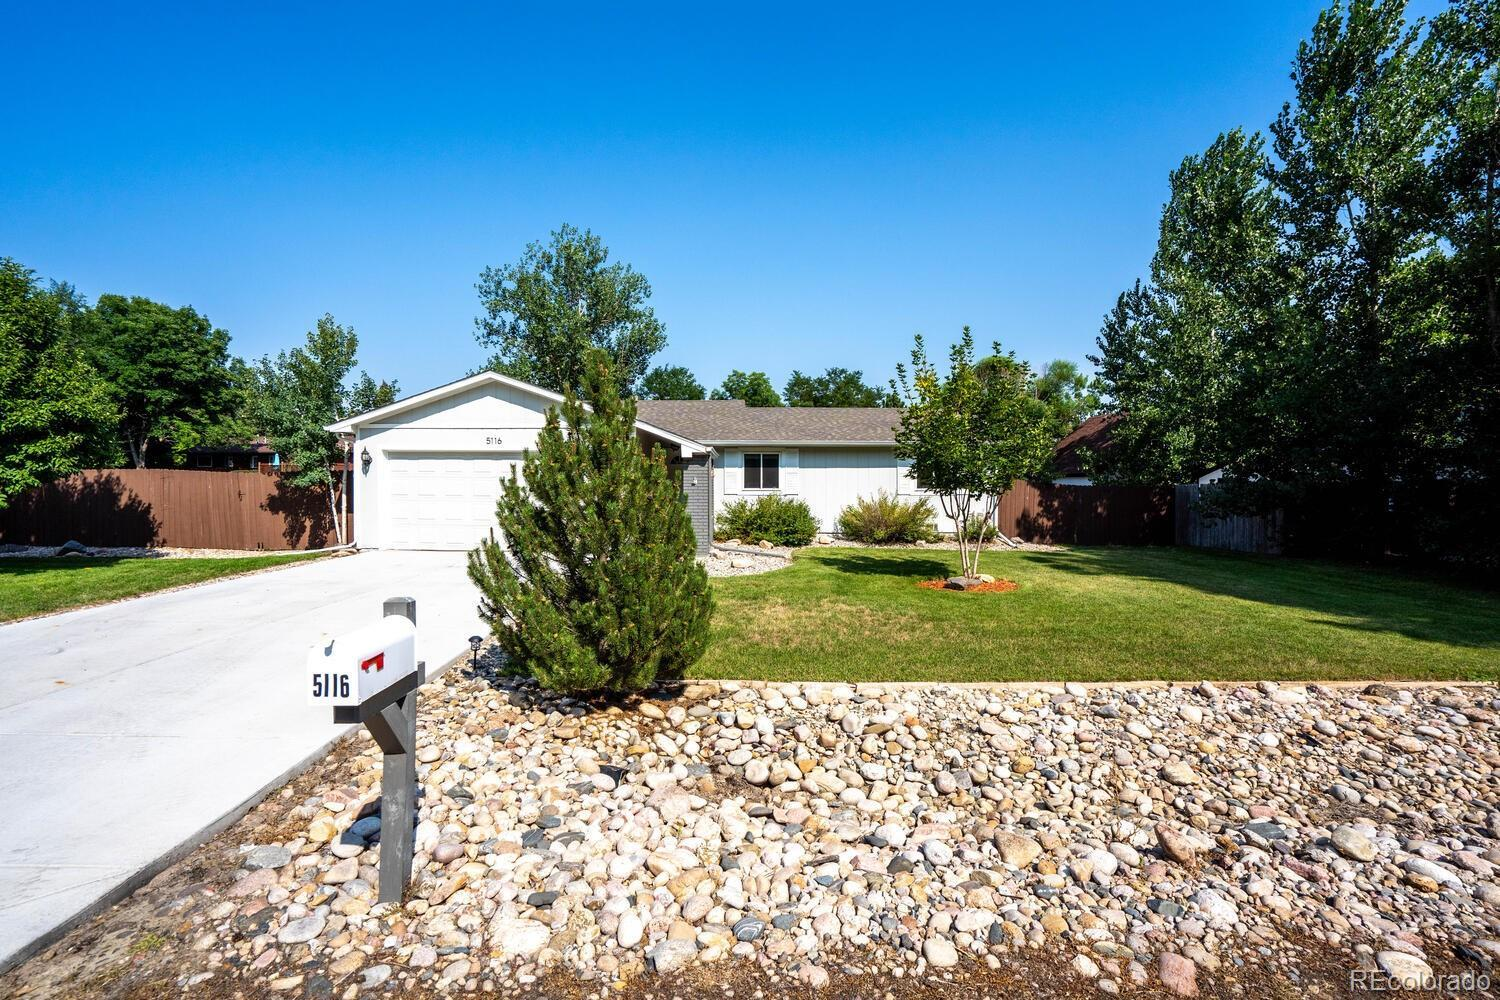 5116 Greenway Drive, Fort Collins, CO 80525 - #: 9023294